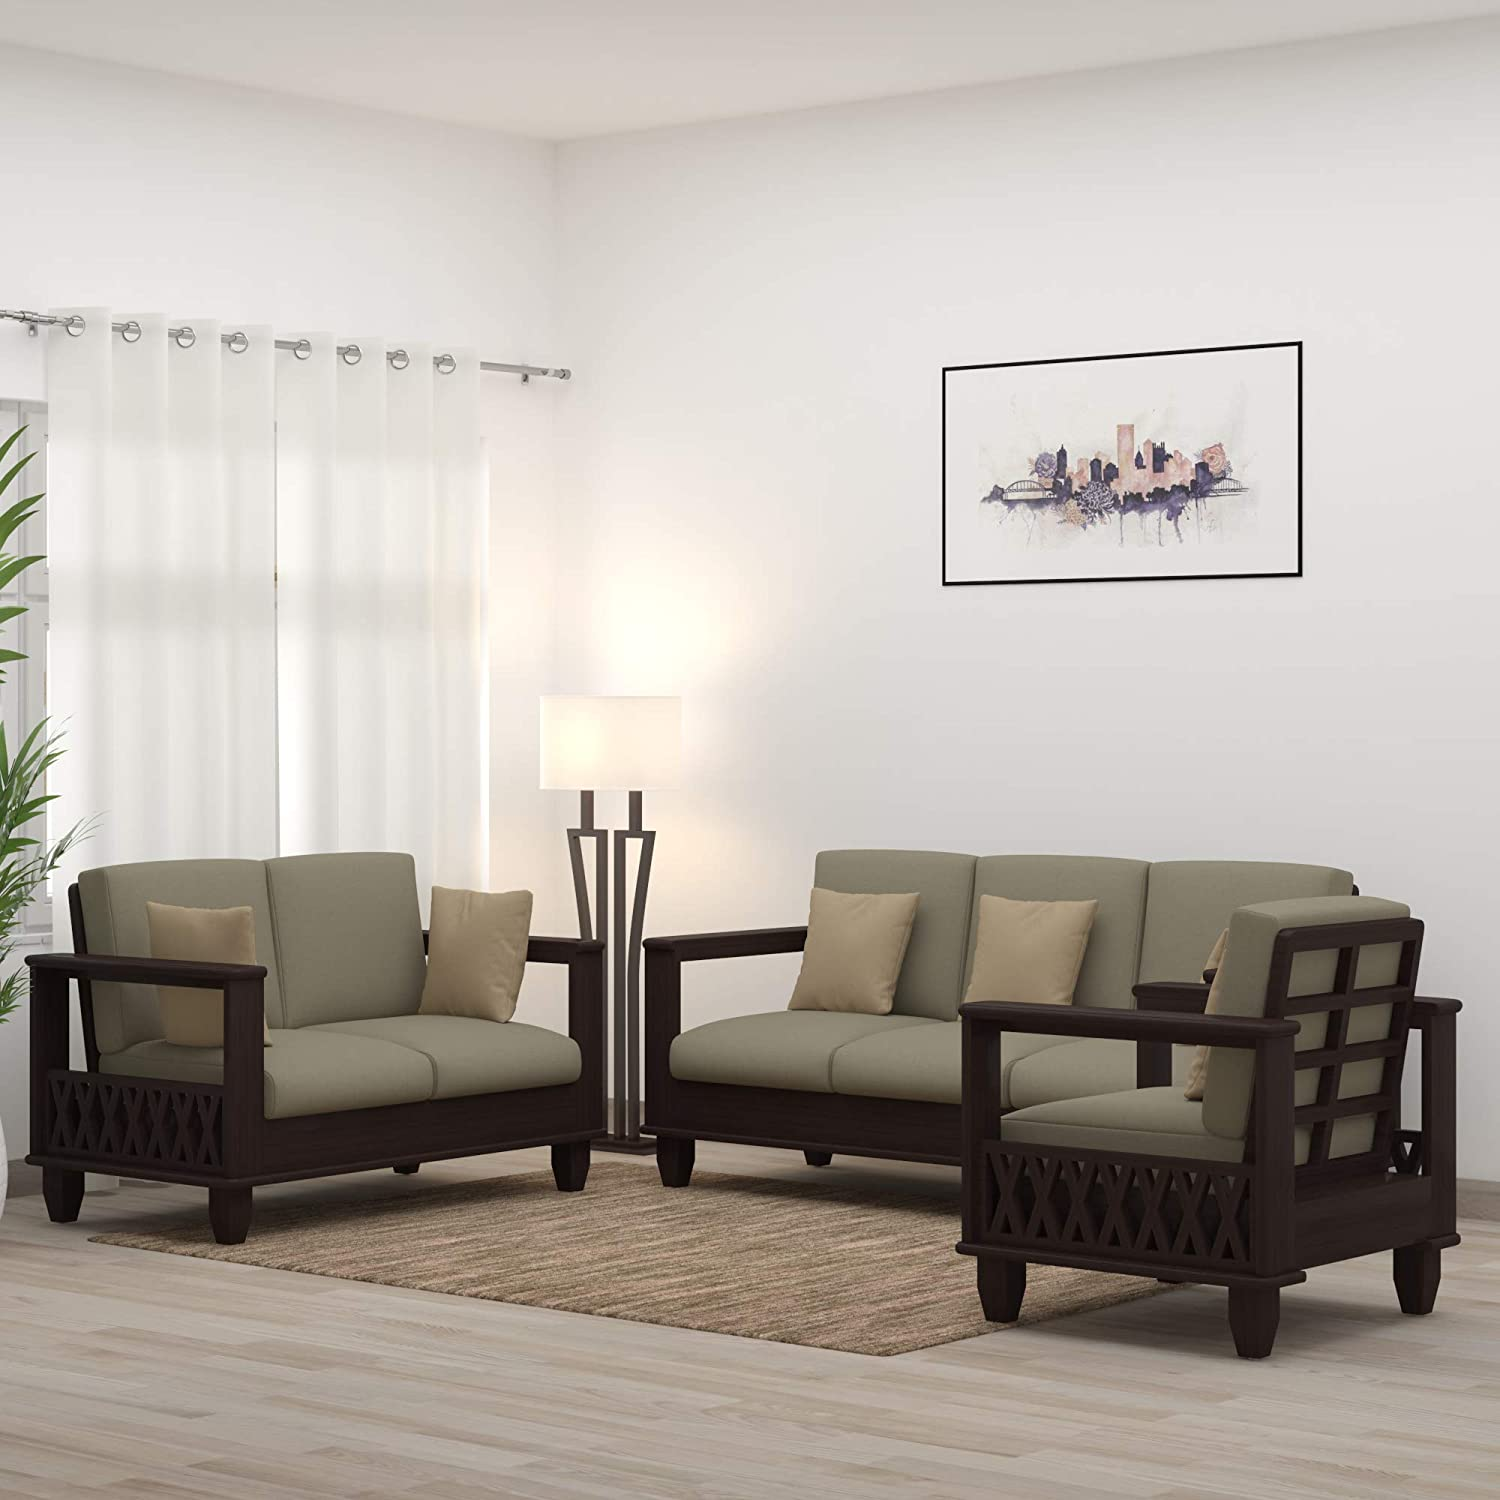 Hema Solid Sheesham Wood Sofa Sets for Living Room 3+2+1 Walnut (Dark Brown)